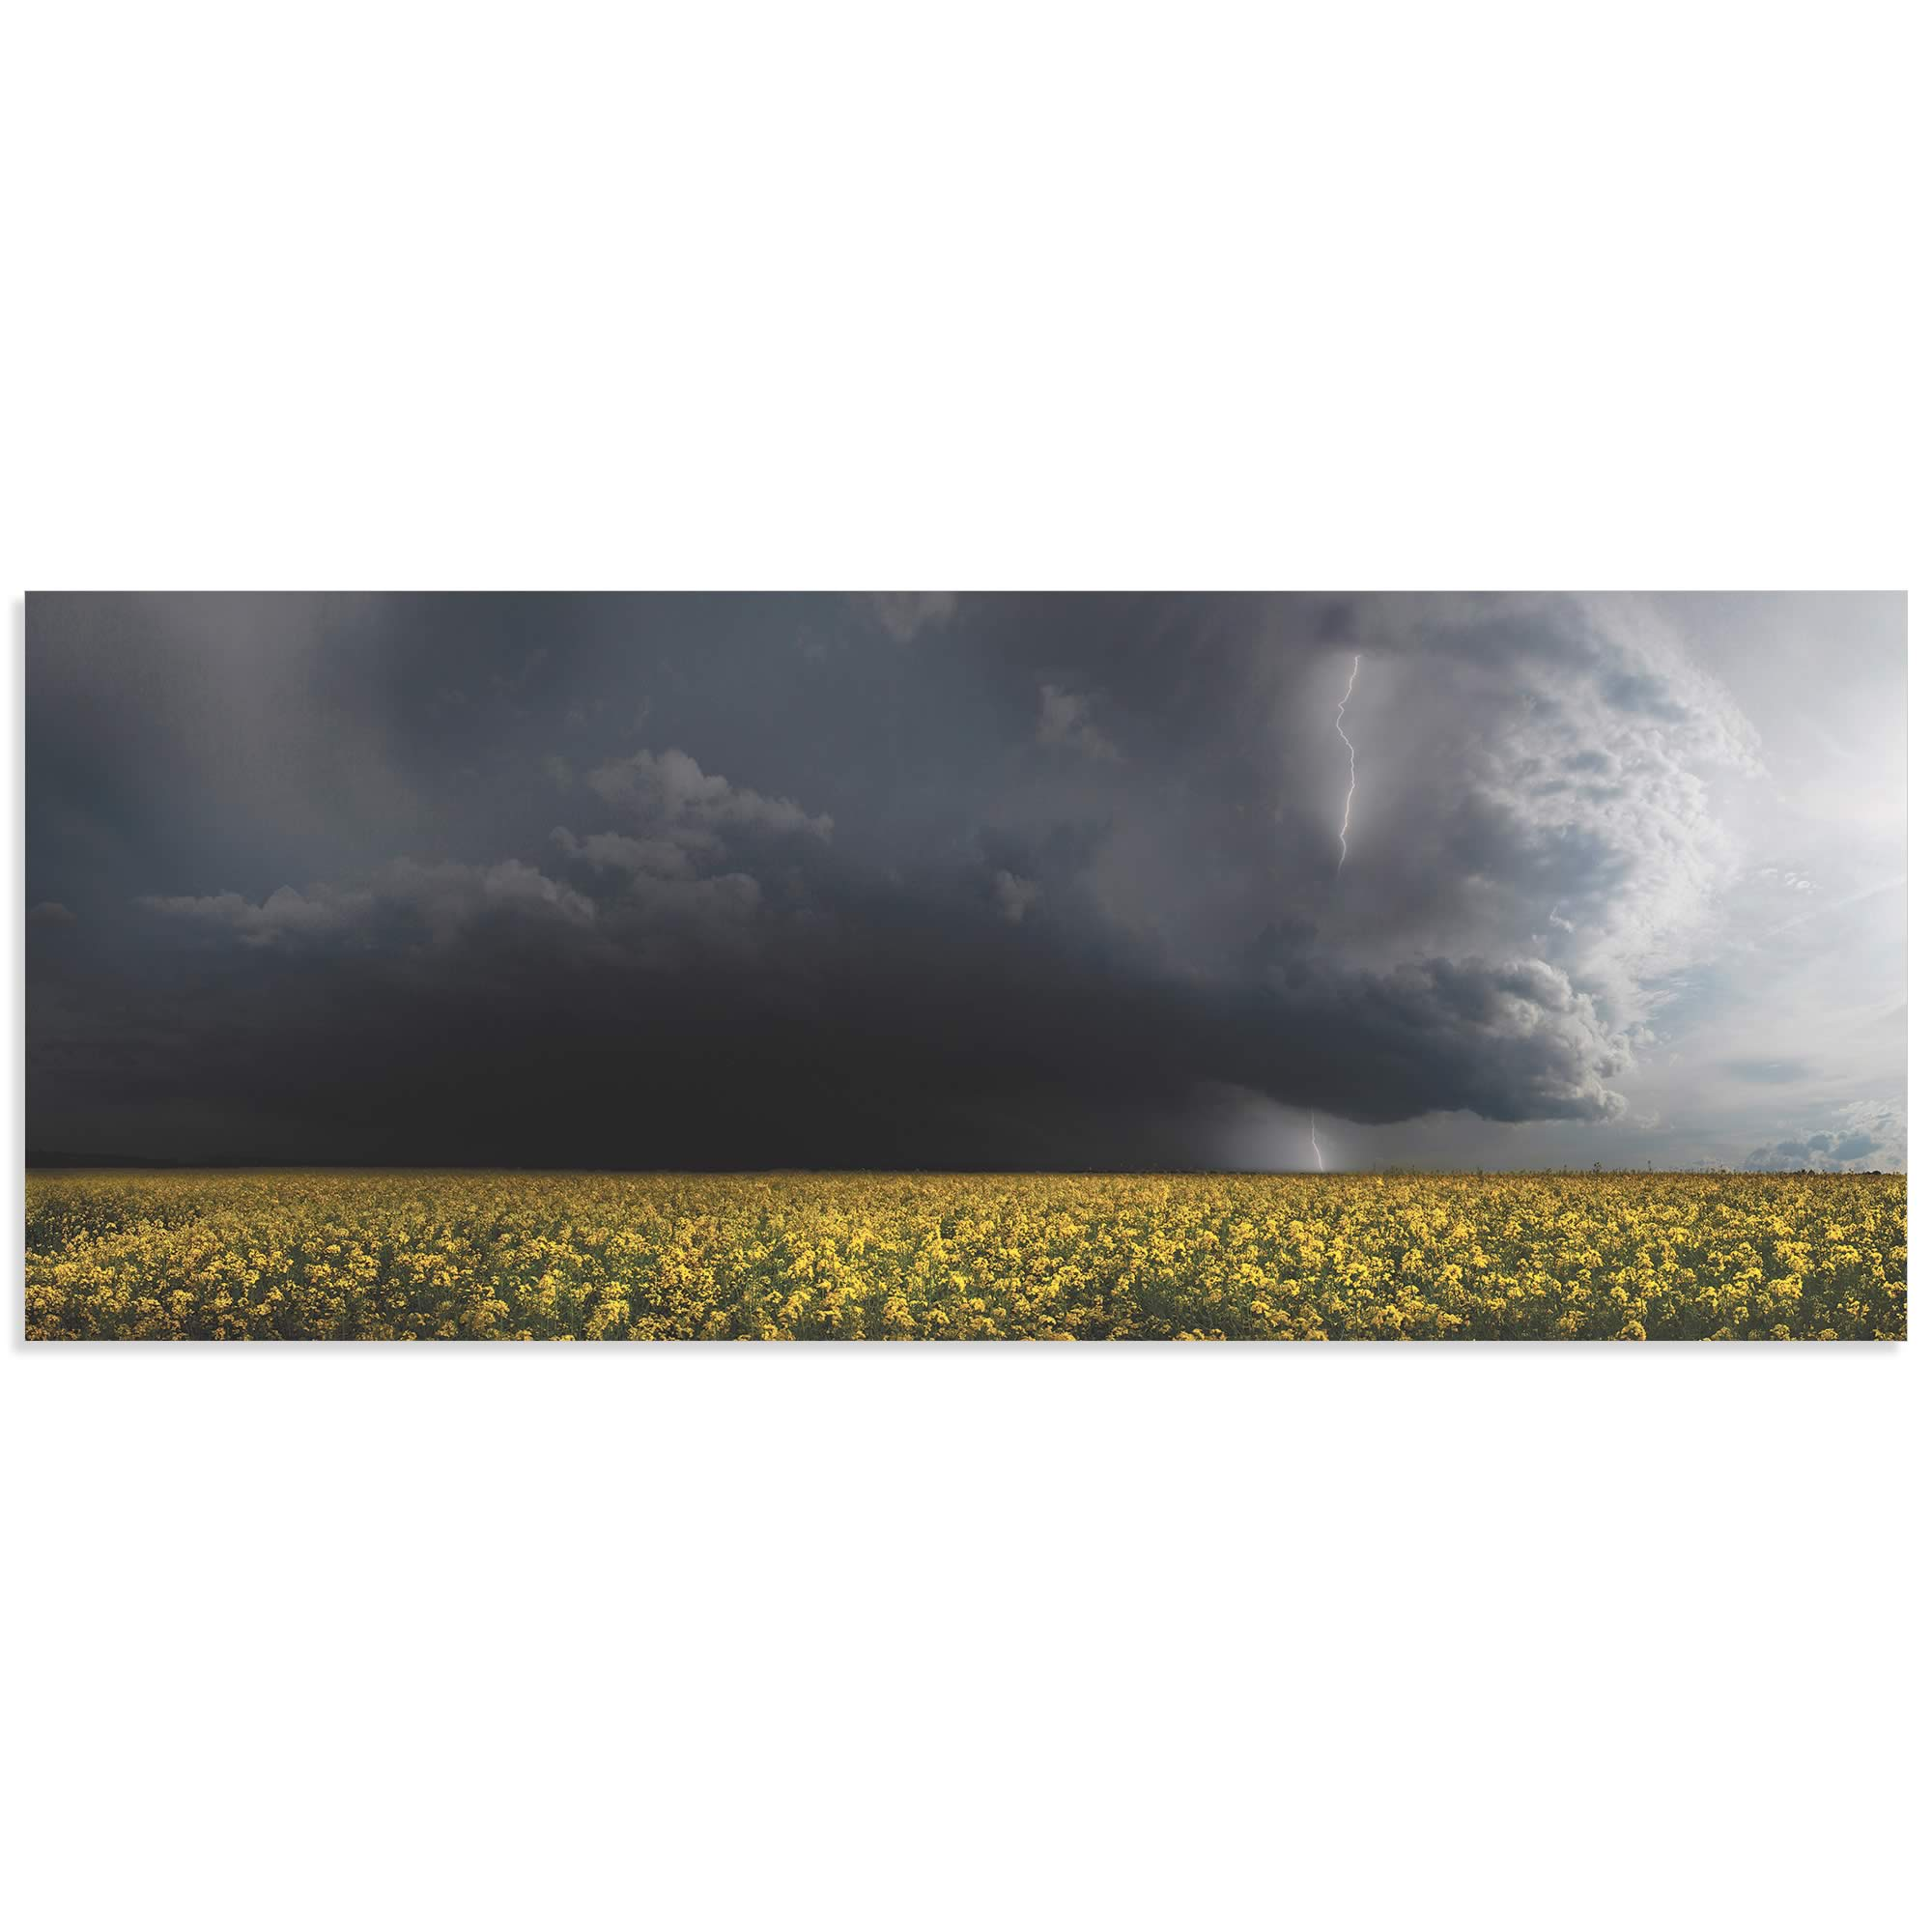 Storm Front by Franz Schumacher - Landscape Photography on Metal or Acrylic